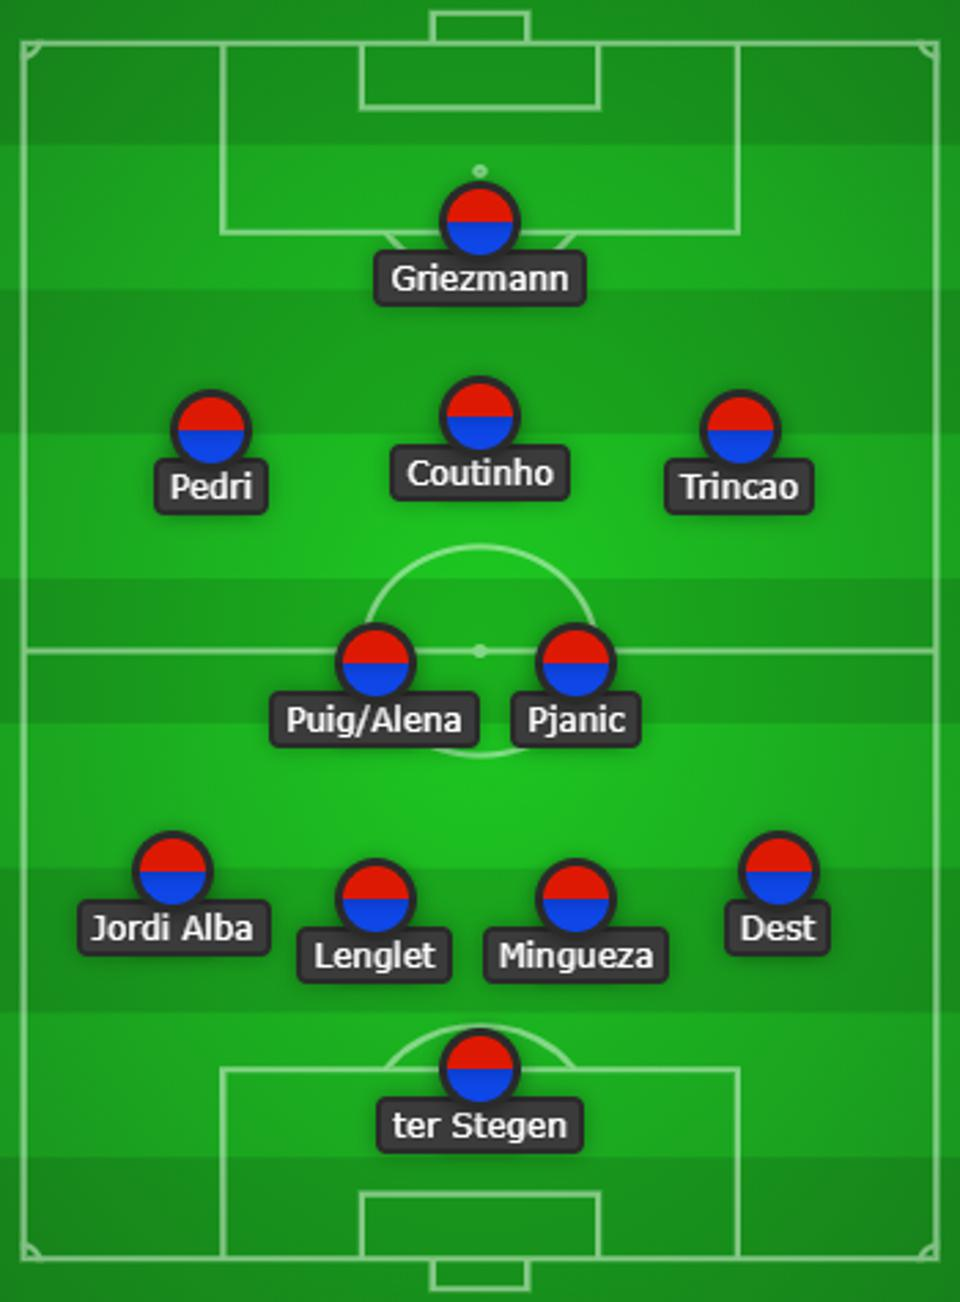 tijrsf2xbcnx1m https www forbes com sites tomsanderson 2020 11 24 fc barcelona versus dynamo kiev preview team news and line up